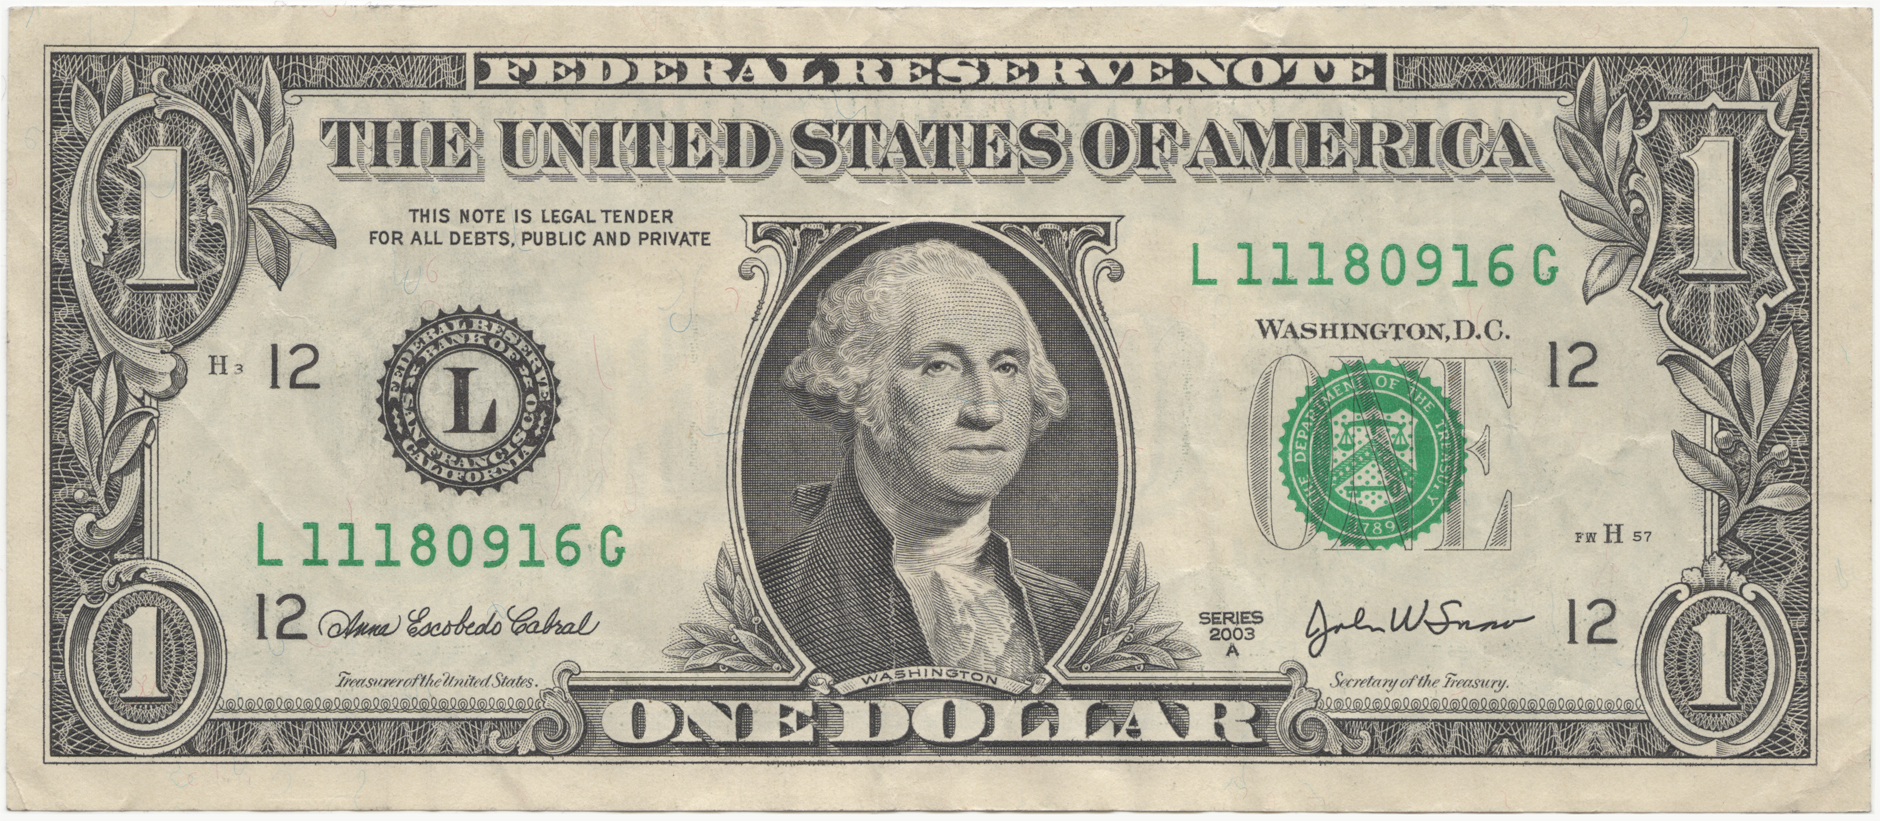 Money Dollar bills HD Wallpaper